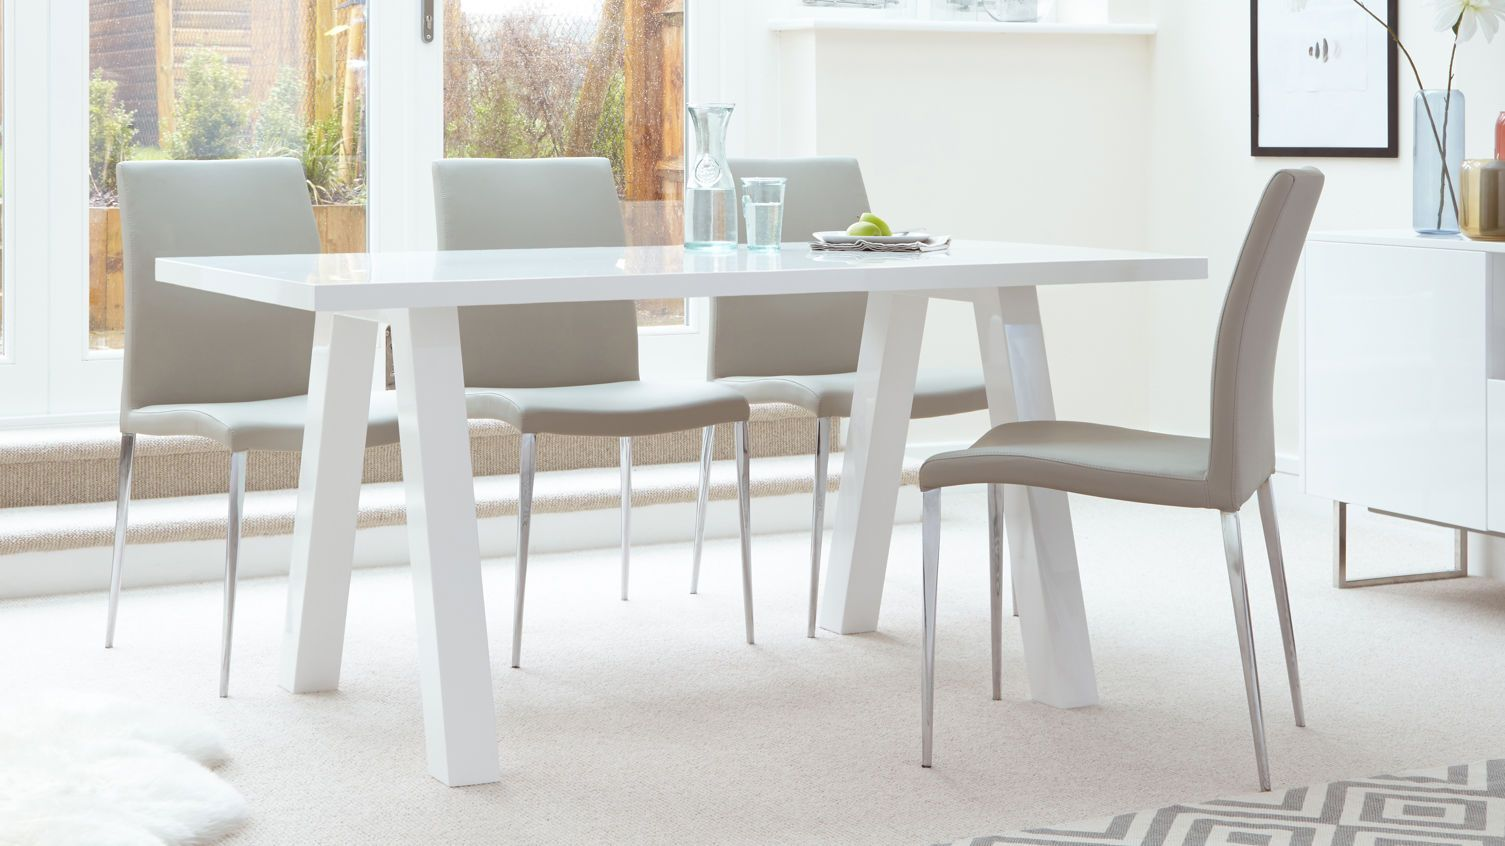 House Of Fraser Dining Room Furniture Captivating 4 Seater Grey Gloss Dining Table  Loungeliving Room  Pinterest Inspiration